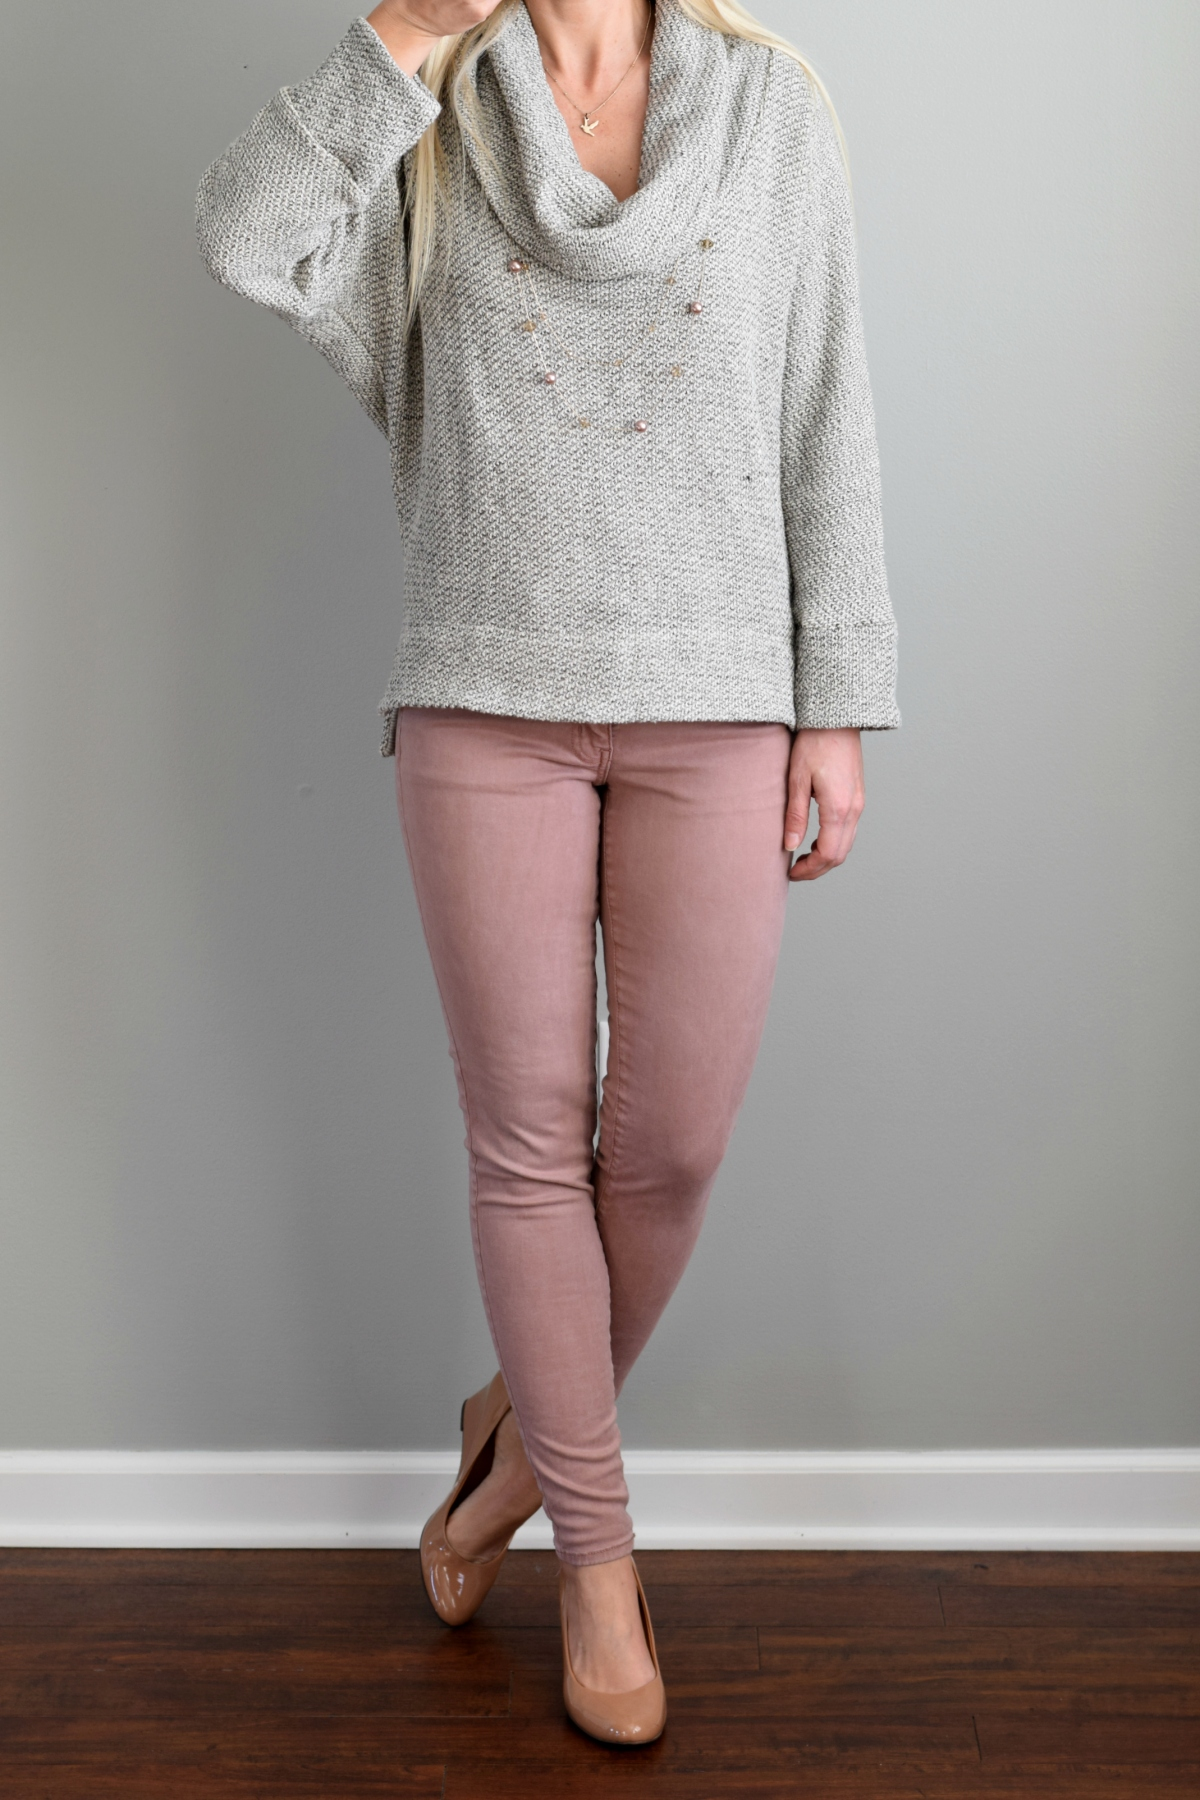 January 2016 Stitch Fix Review: Sweet Grey Cusso Cowl Neck Knit Pullover |www.pearlsandsportsbras.com|